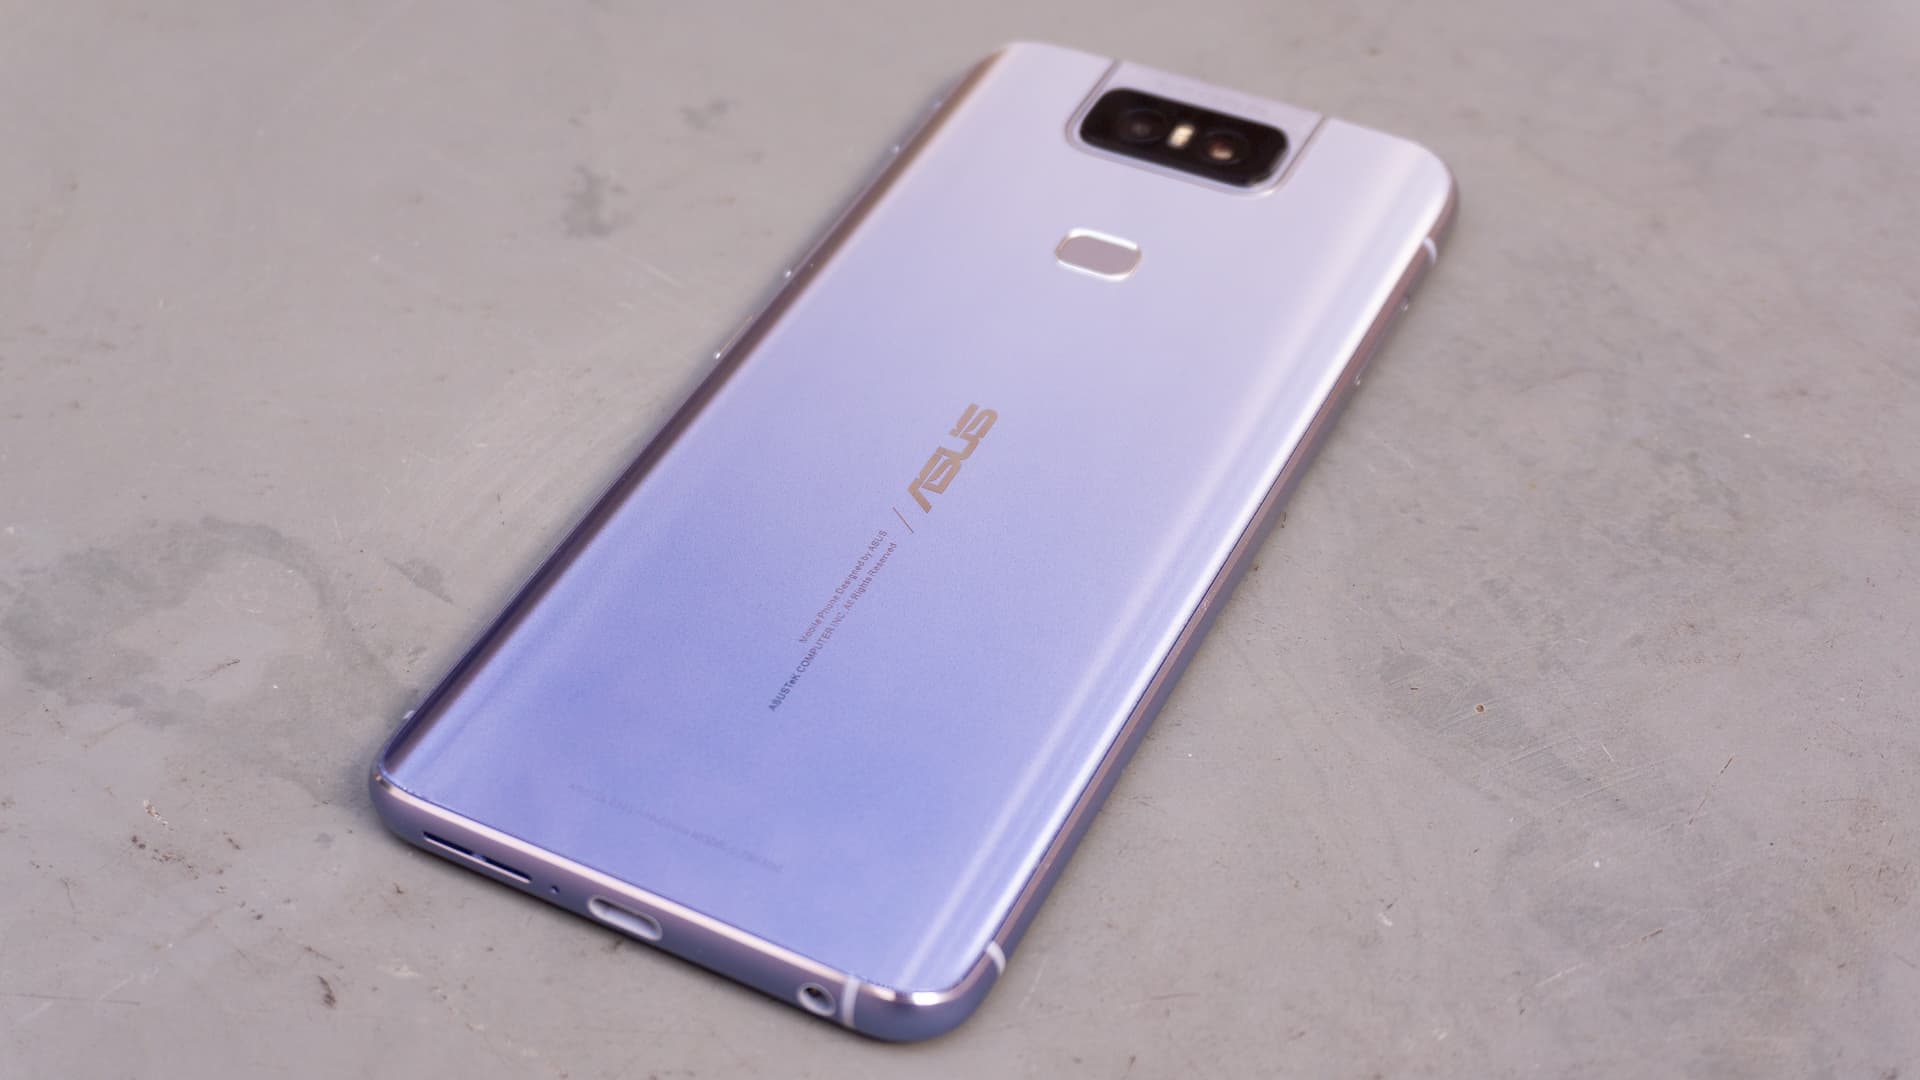 Traseira do Asus Zenfone 6